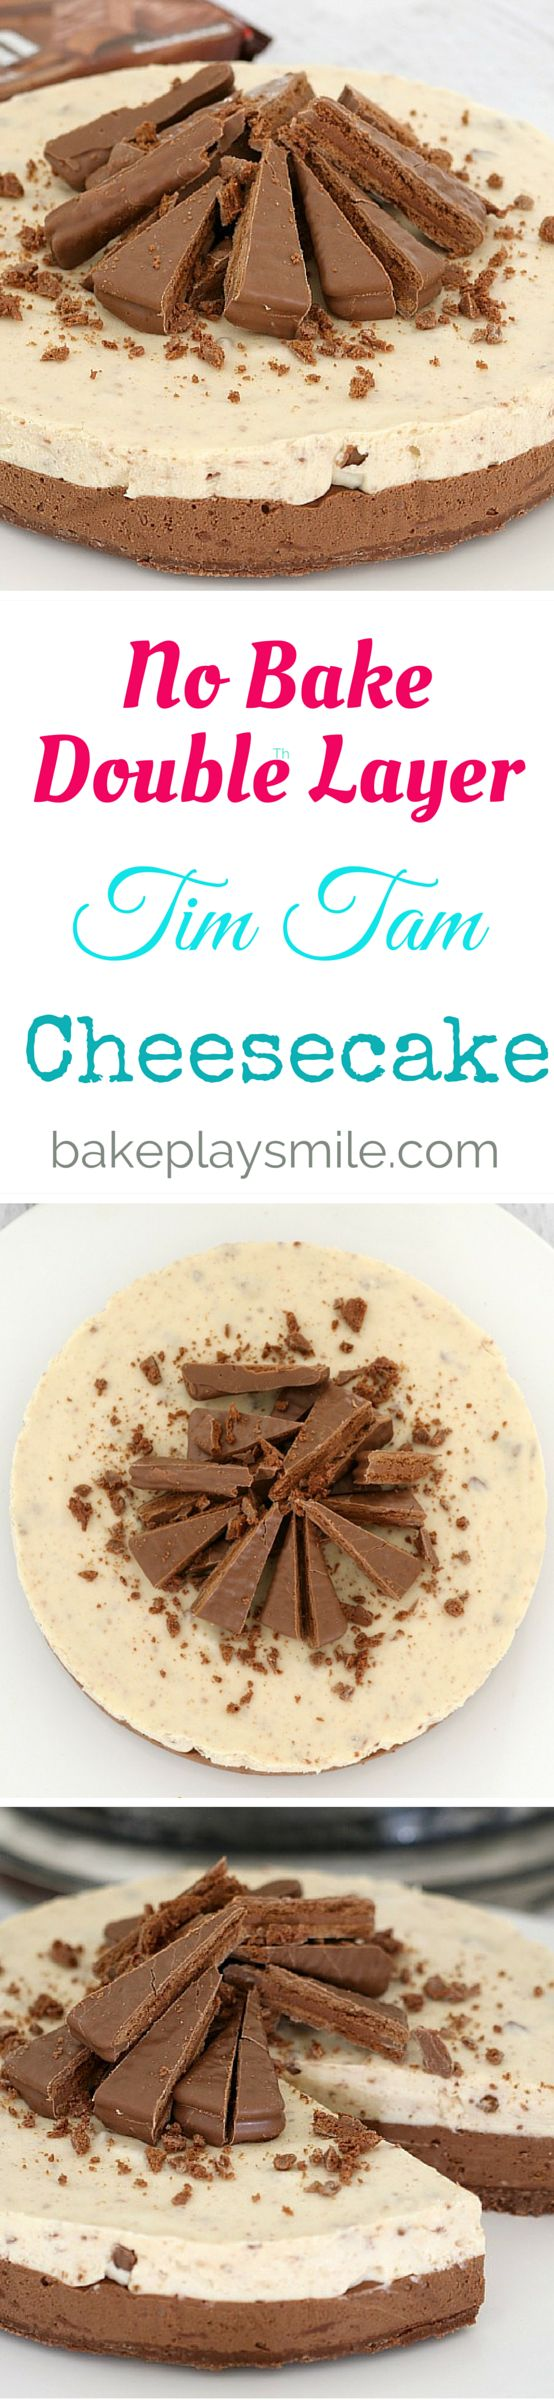 It doesn't get any more delicious than this No-Bake Double Layer Tim Tam Cheesecake! With a Tim Tam base, milk and white chocolate layers…